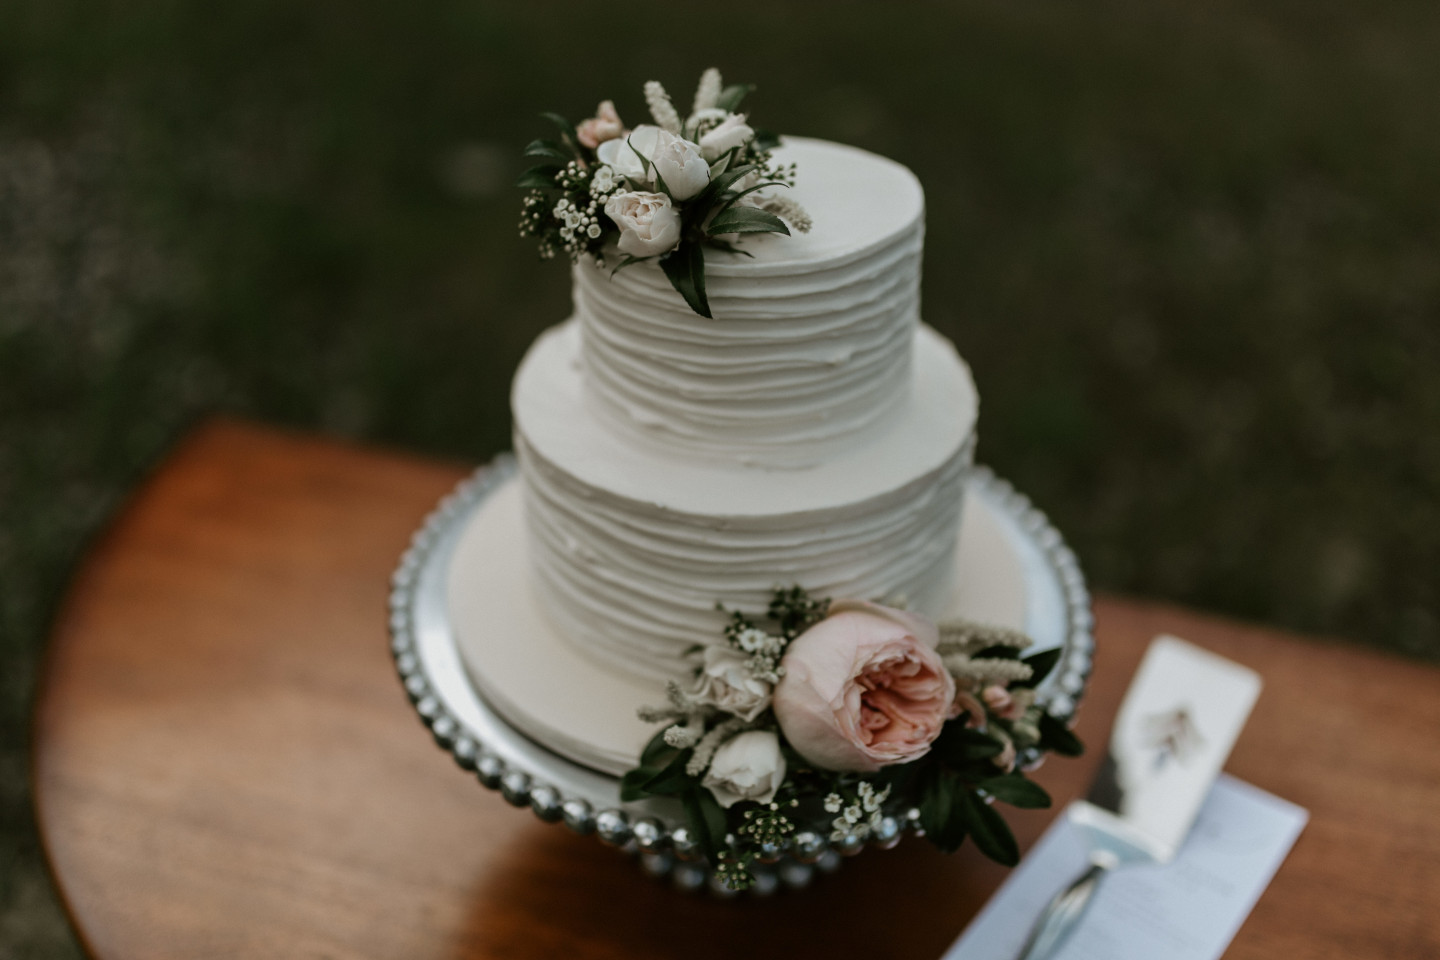 A wedding cake at Cascade Locks at the Columbia Gorge, Oregon. Elopement photography in Portland Oregon by Sienna Plus Josh.